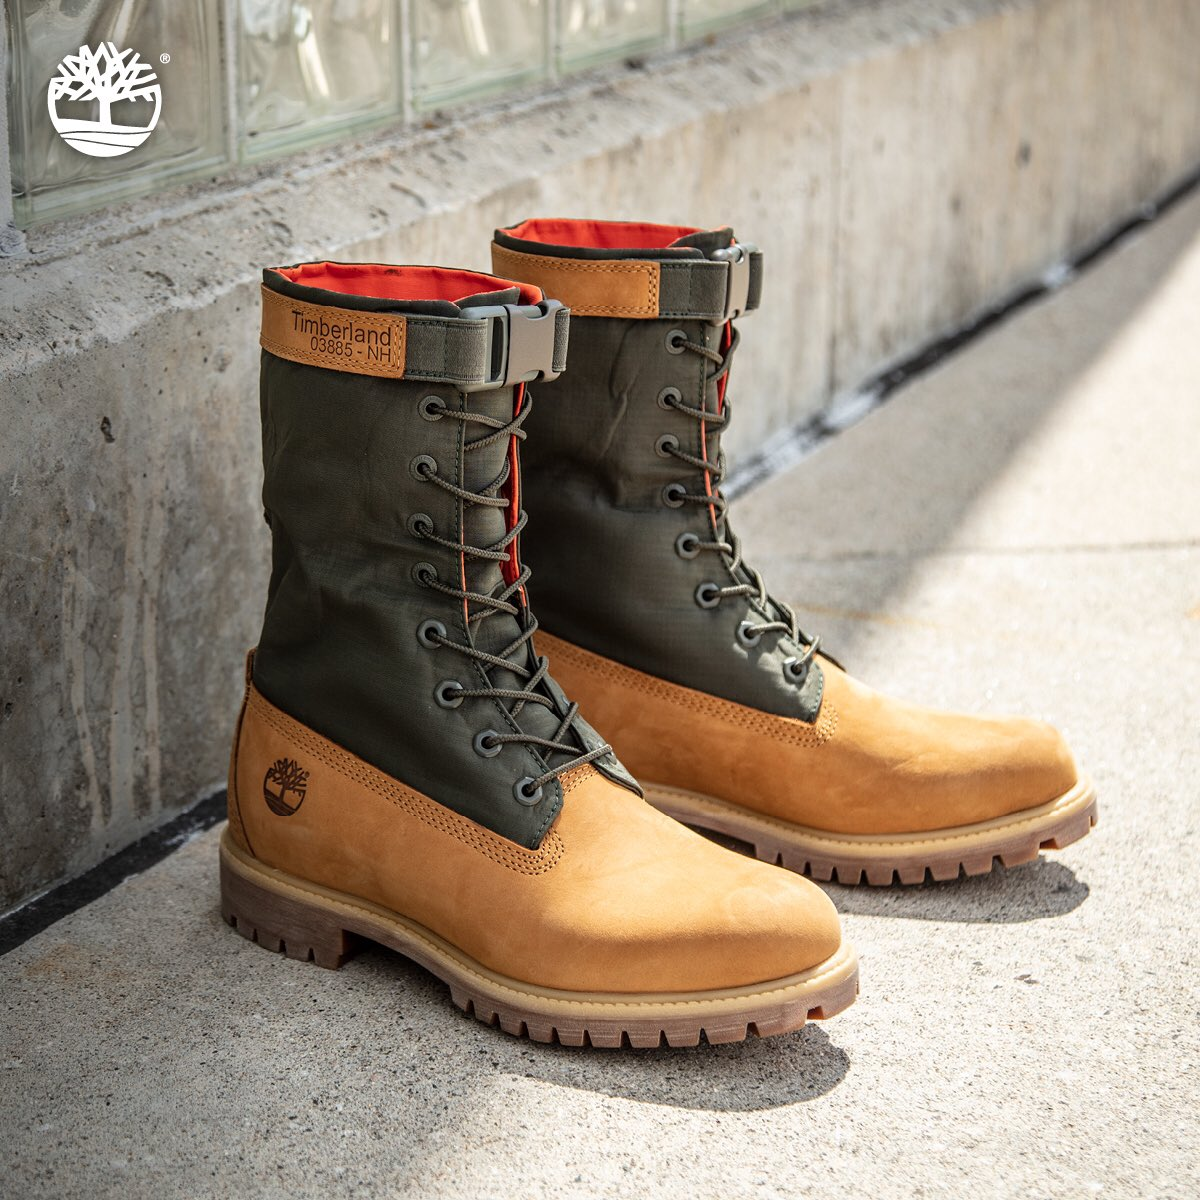 Style: The versatility of the Timberland boot | ABathingX